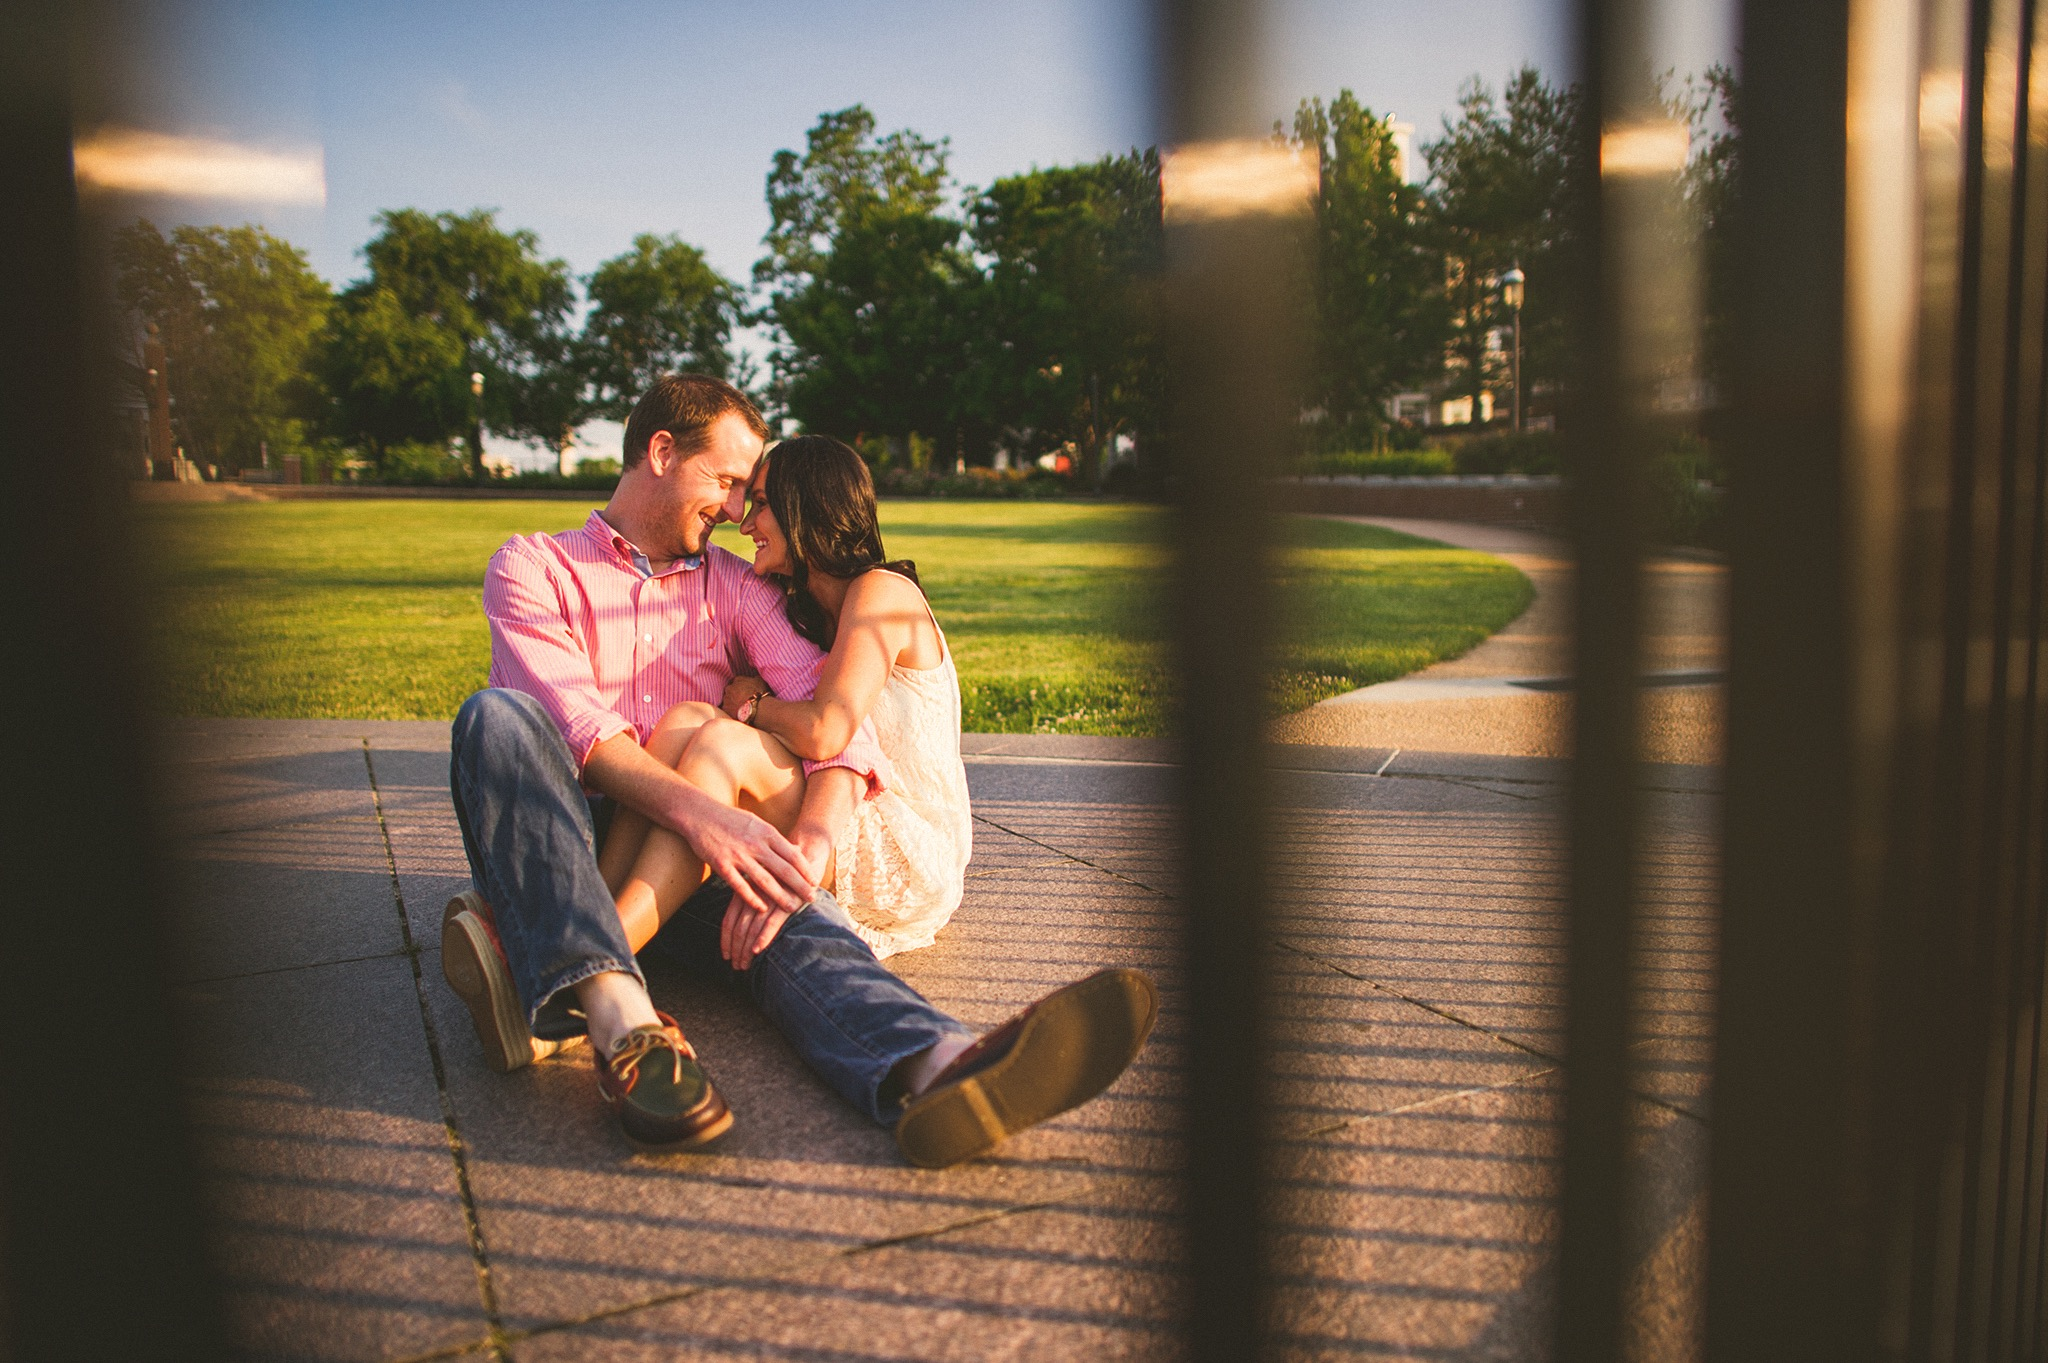 03-creative-redbank-engagement-photos.jpg